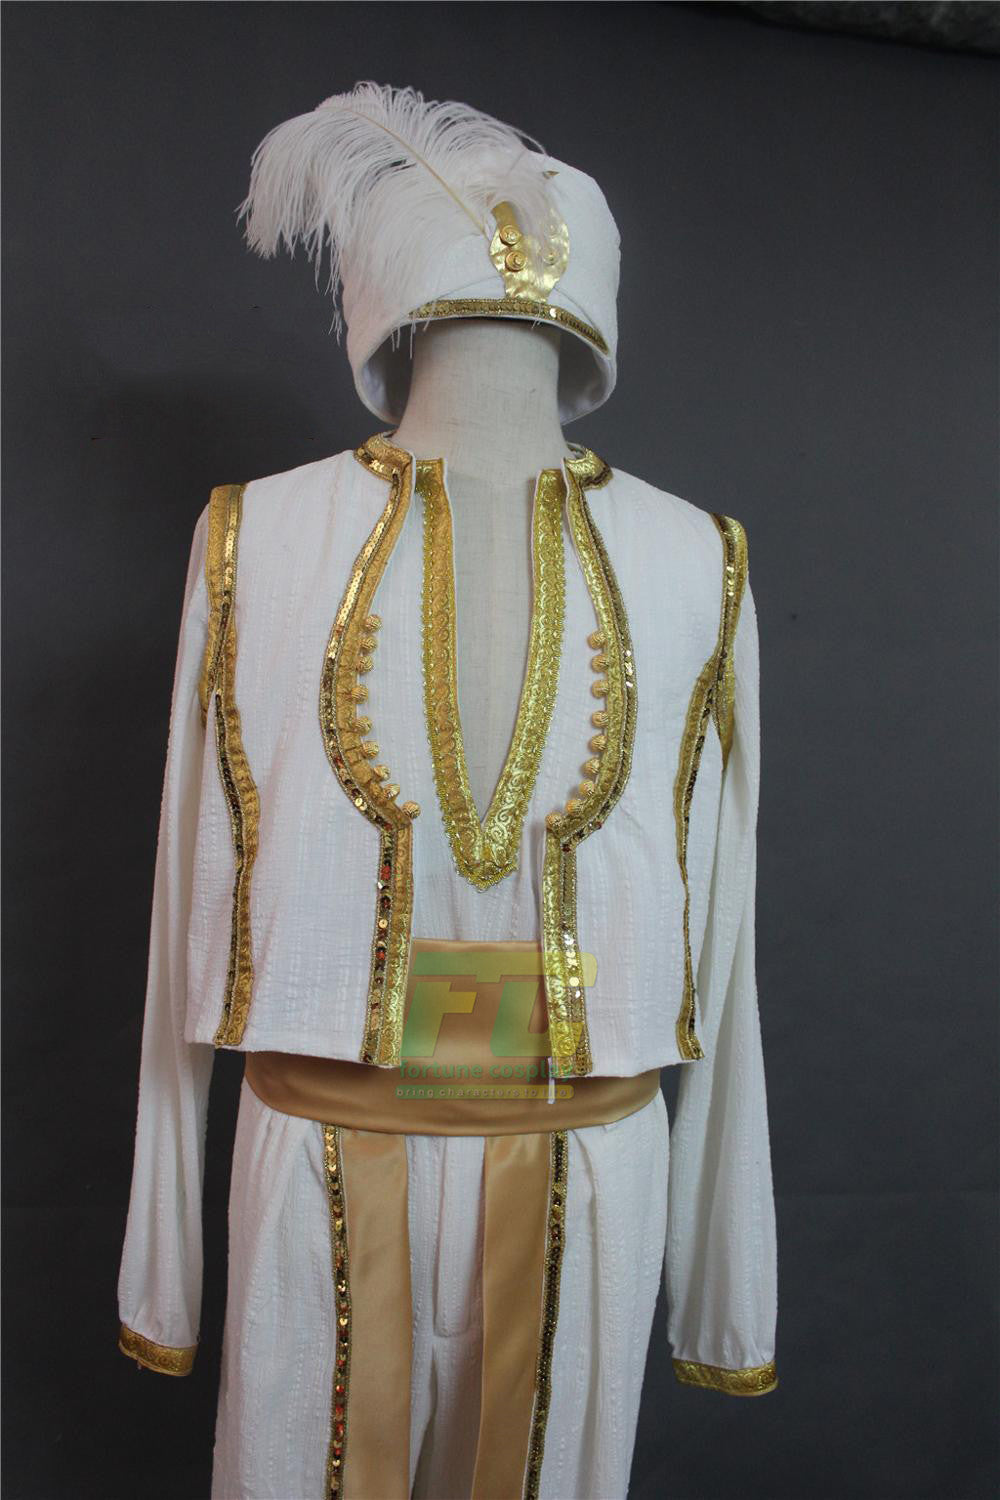 Free Shipping 2019 Movie Aladdin Lamp Prince Mena Massoud Cosplay Costume Custom Made